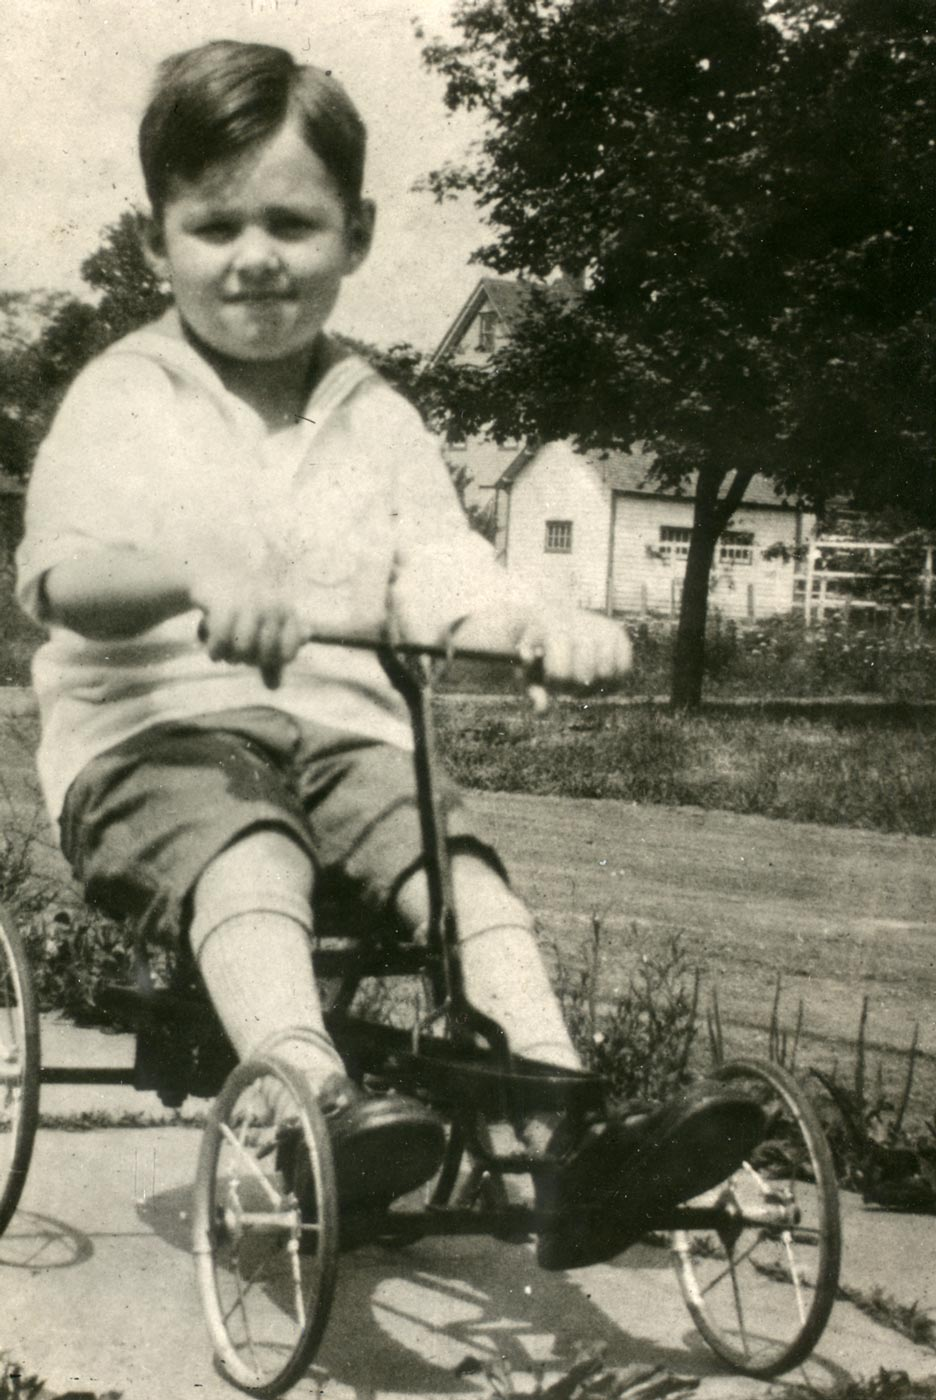 A black and white photograph of a healthy Teddy Ryder riding a tricycle.